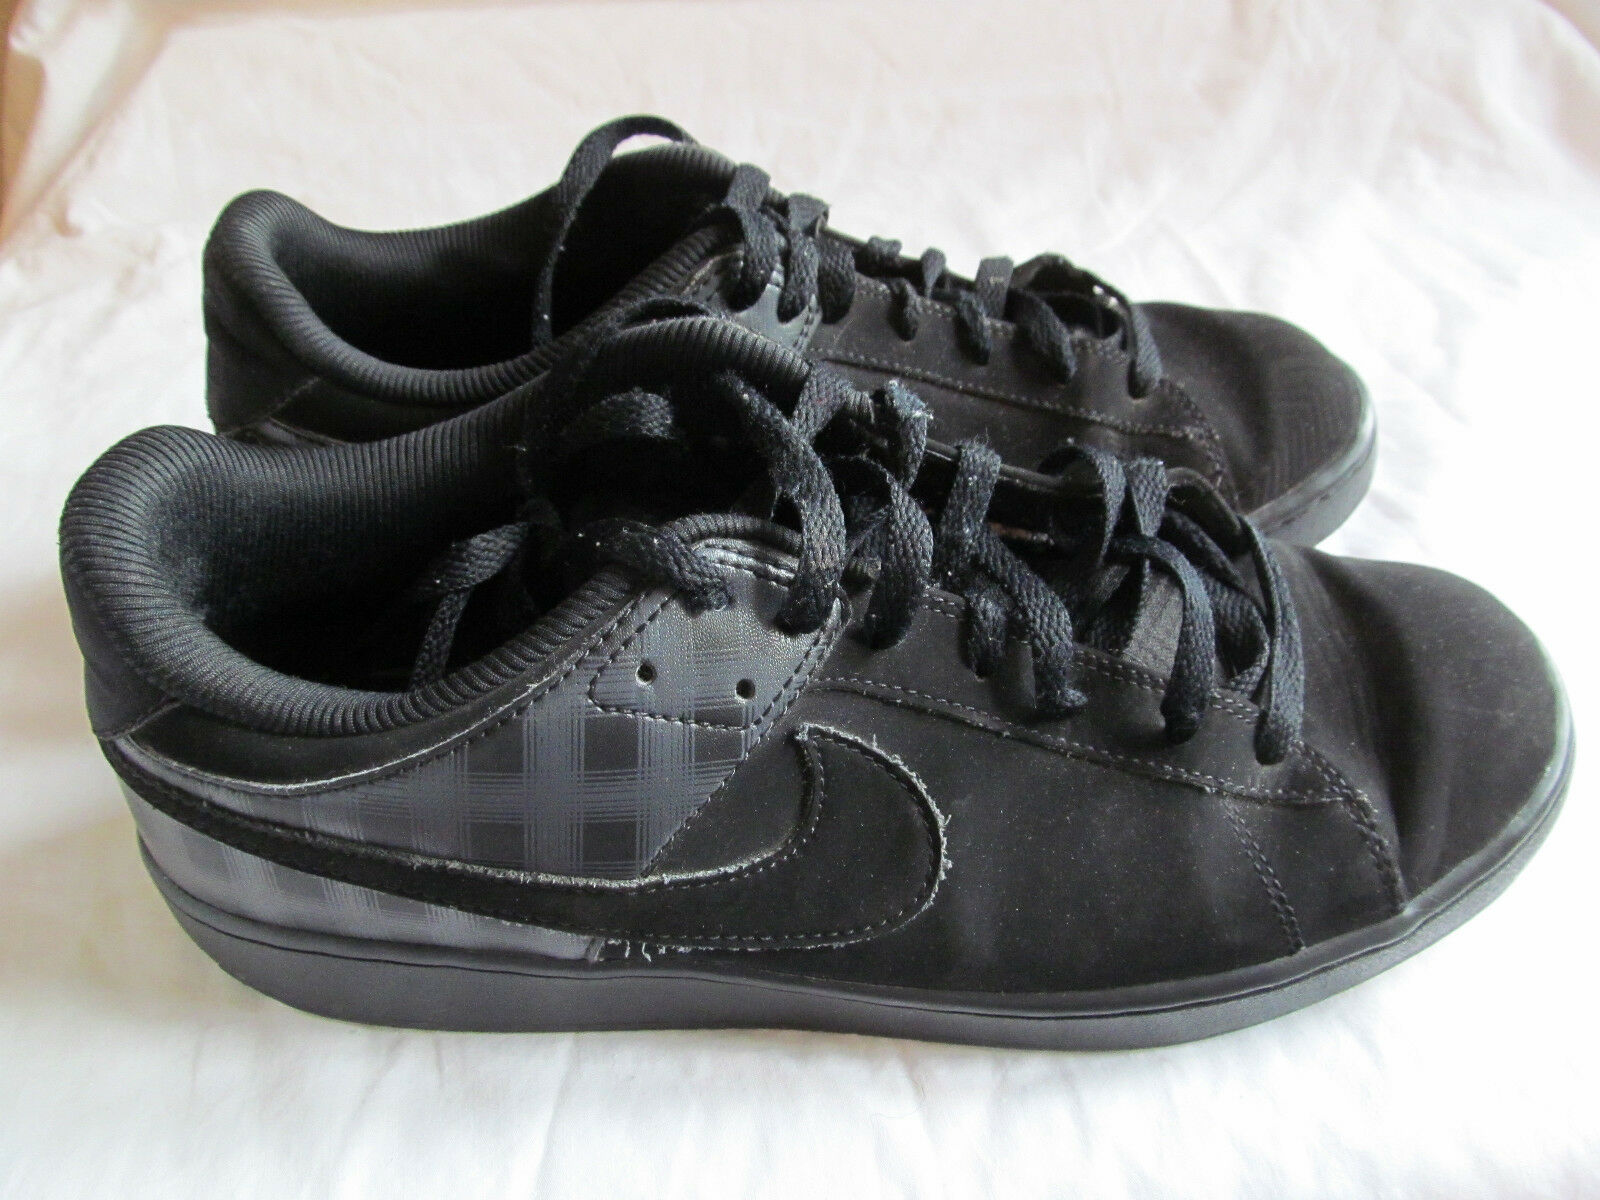 MEN'S BLACK NIKE SANTA CRUISE 318816-005 LOW TOP SKATER/SKATEBOARD SHOES SIZE 10 The most popular shoes for men and women